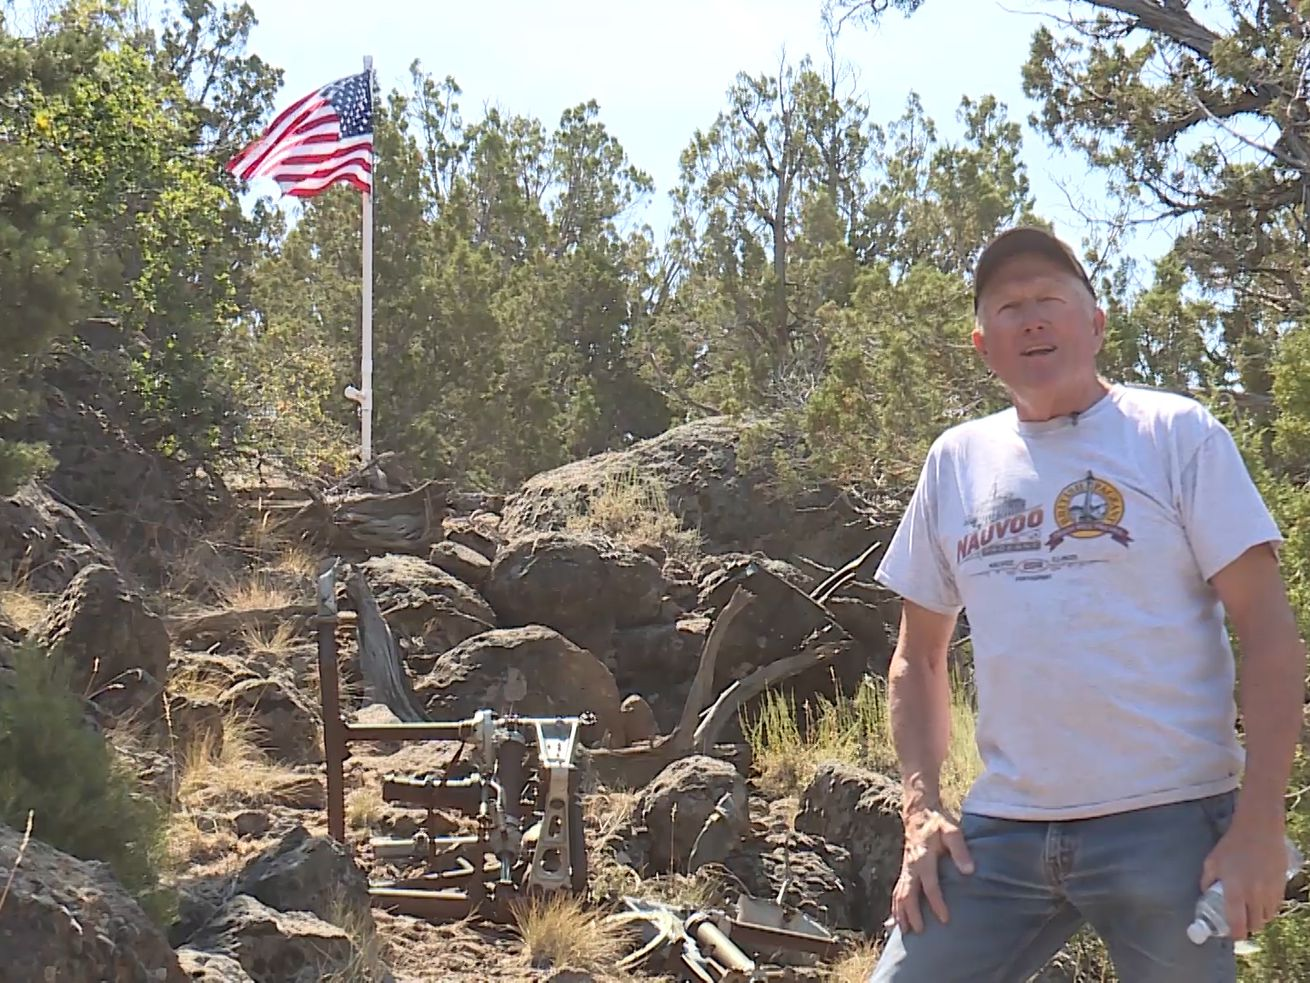 Researching WWII airplane crash sites in southern Utah has become one man's passion